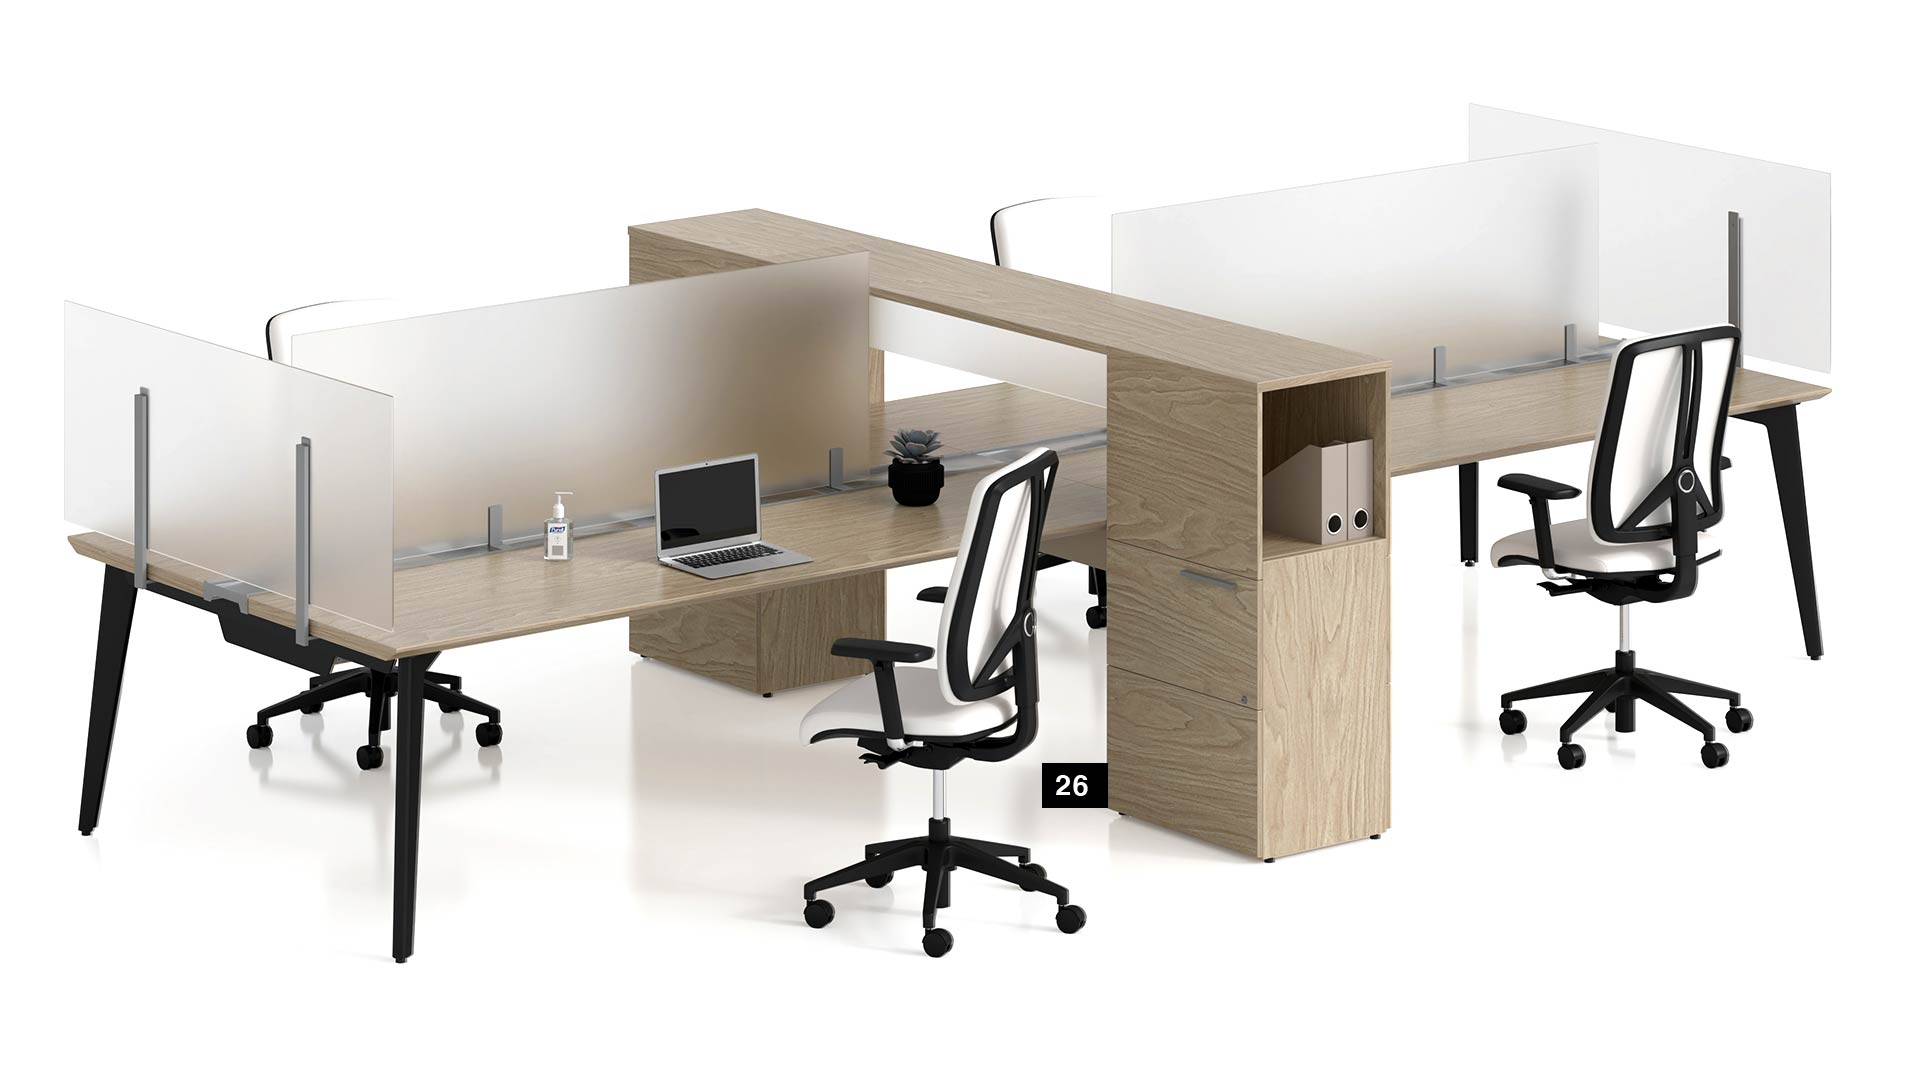 social-distancing-office-groupe-lacasse-cite-workstation-1